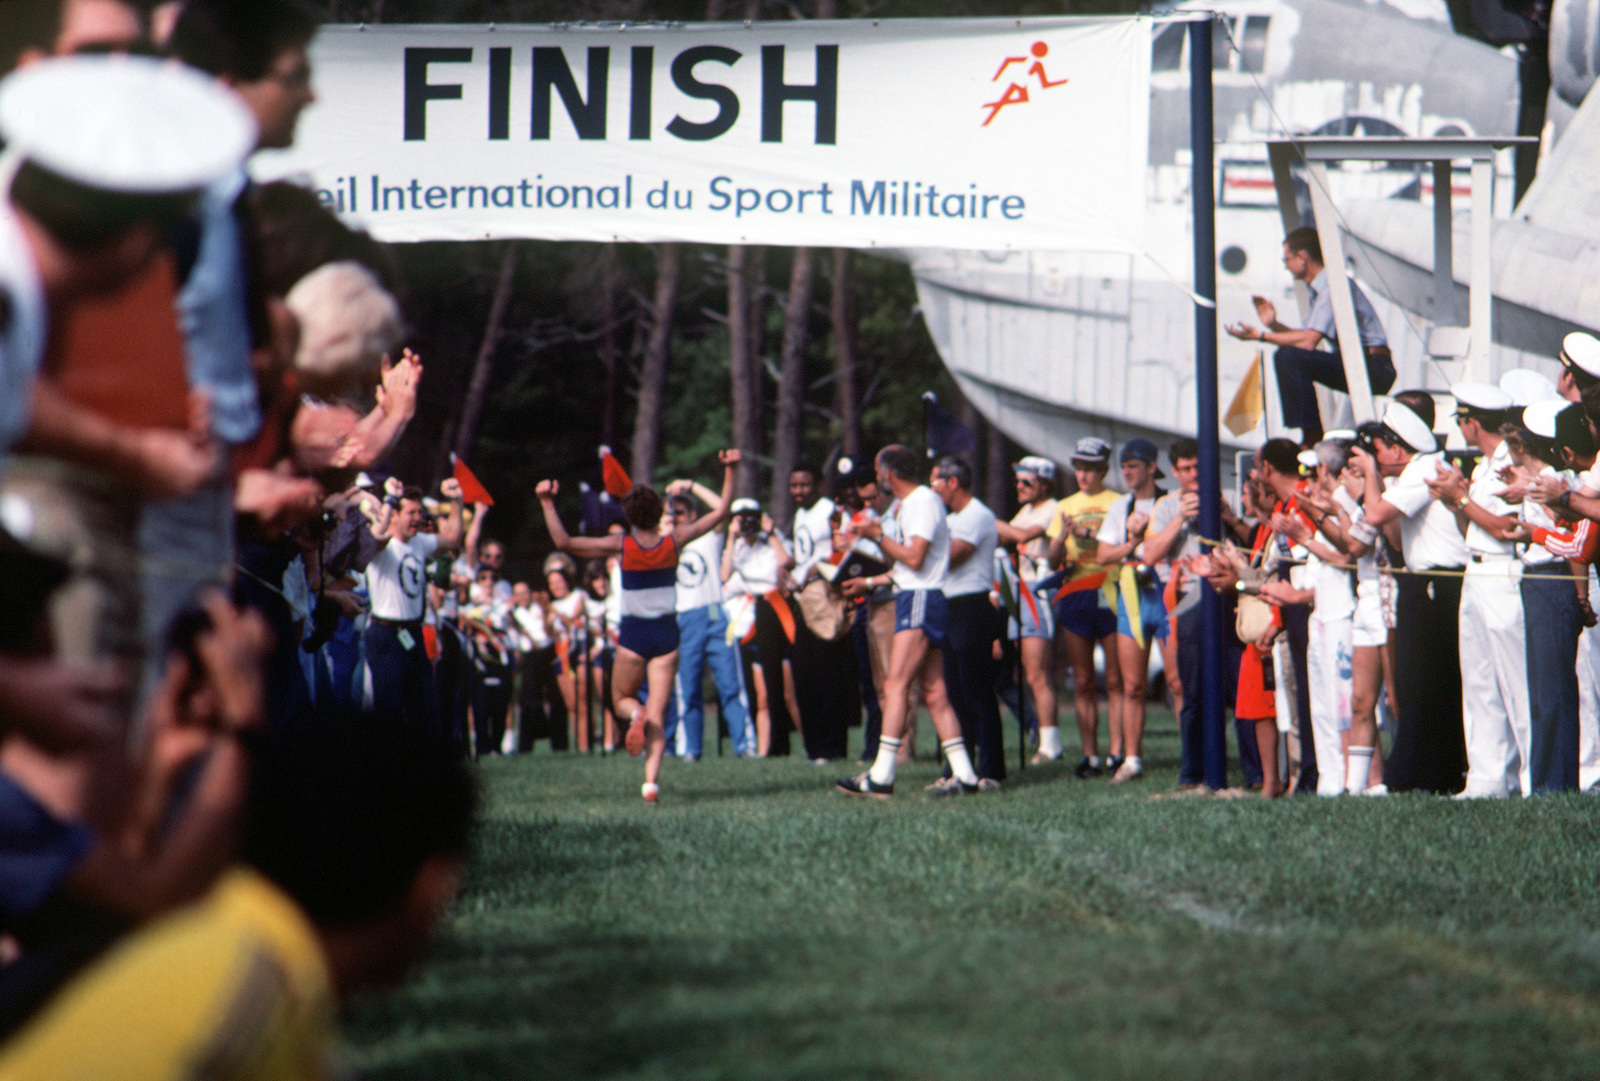 A participant in the 31st Conseil International du Sport Militaire (CISM) crosses the finish line to win one of the running events. The CISM is an annual meeting of military athletes from all over the world